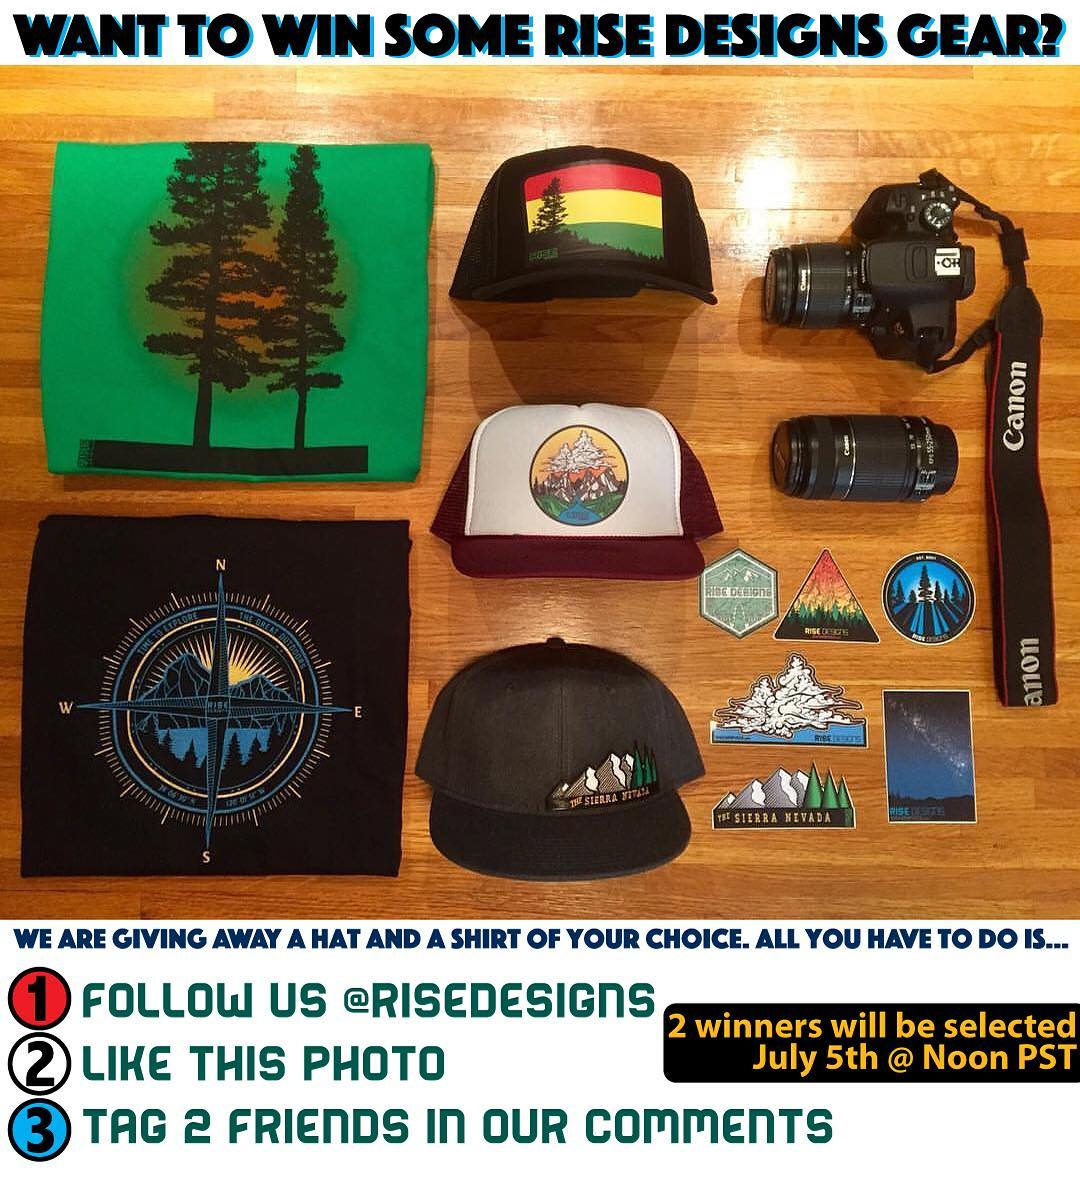 Contest! Want to win some free Rise Designs gear? All you have to do is: 1) Follow us 2) Like this photo 3) Tag 2 friends in the comments. Easy right? We will pick 2 winners on Tuesday and they will have their choice of 1 hat and 1 shirt from our...